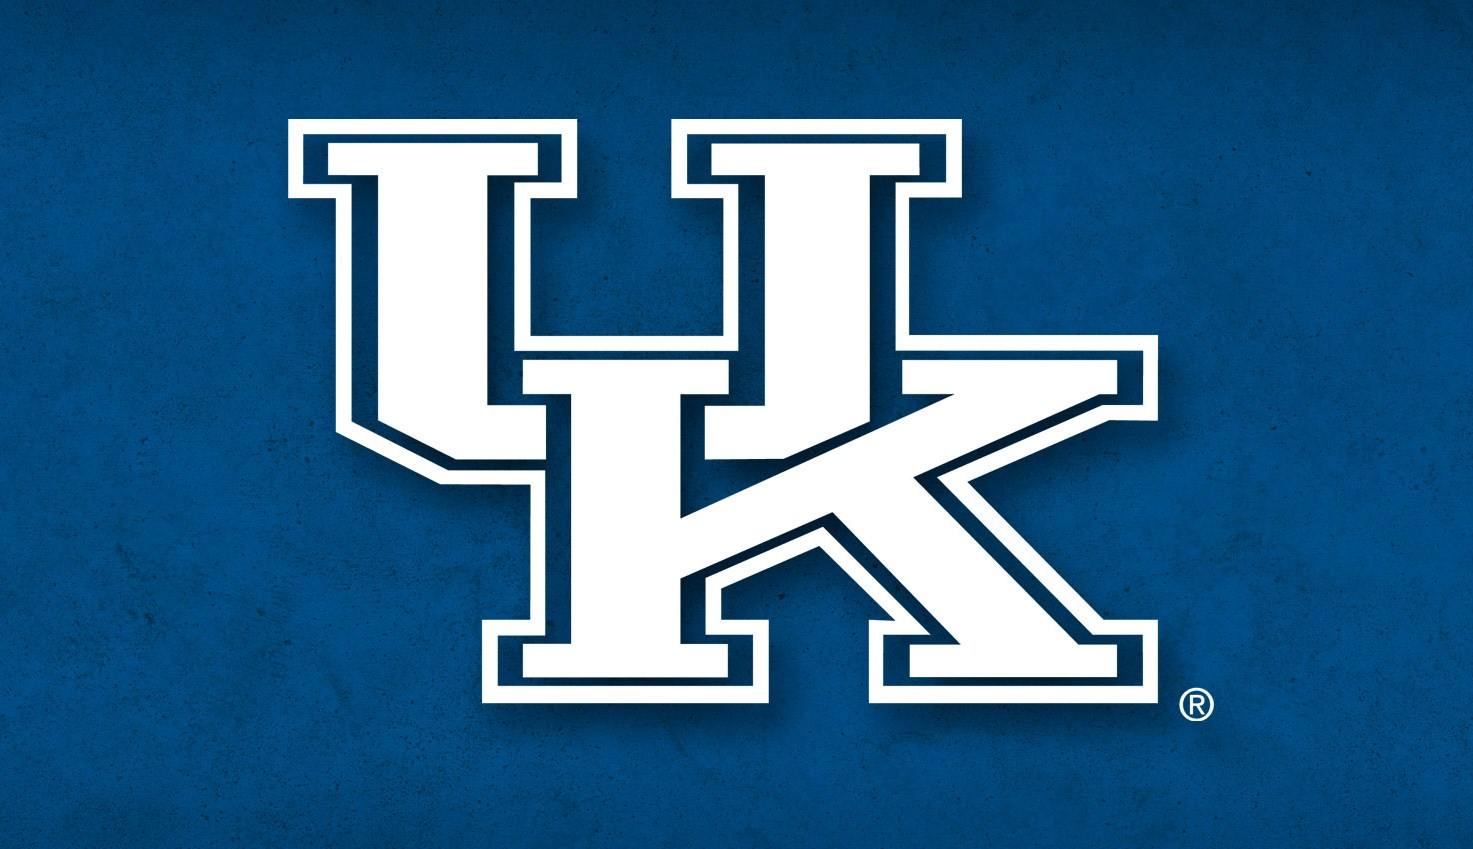 Uk Basketball Logo: All Basketball Scores Info